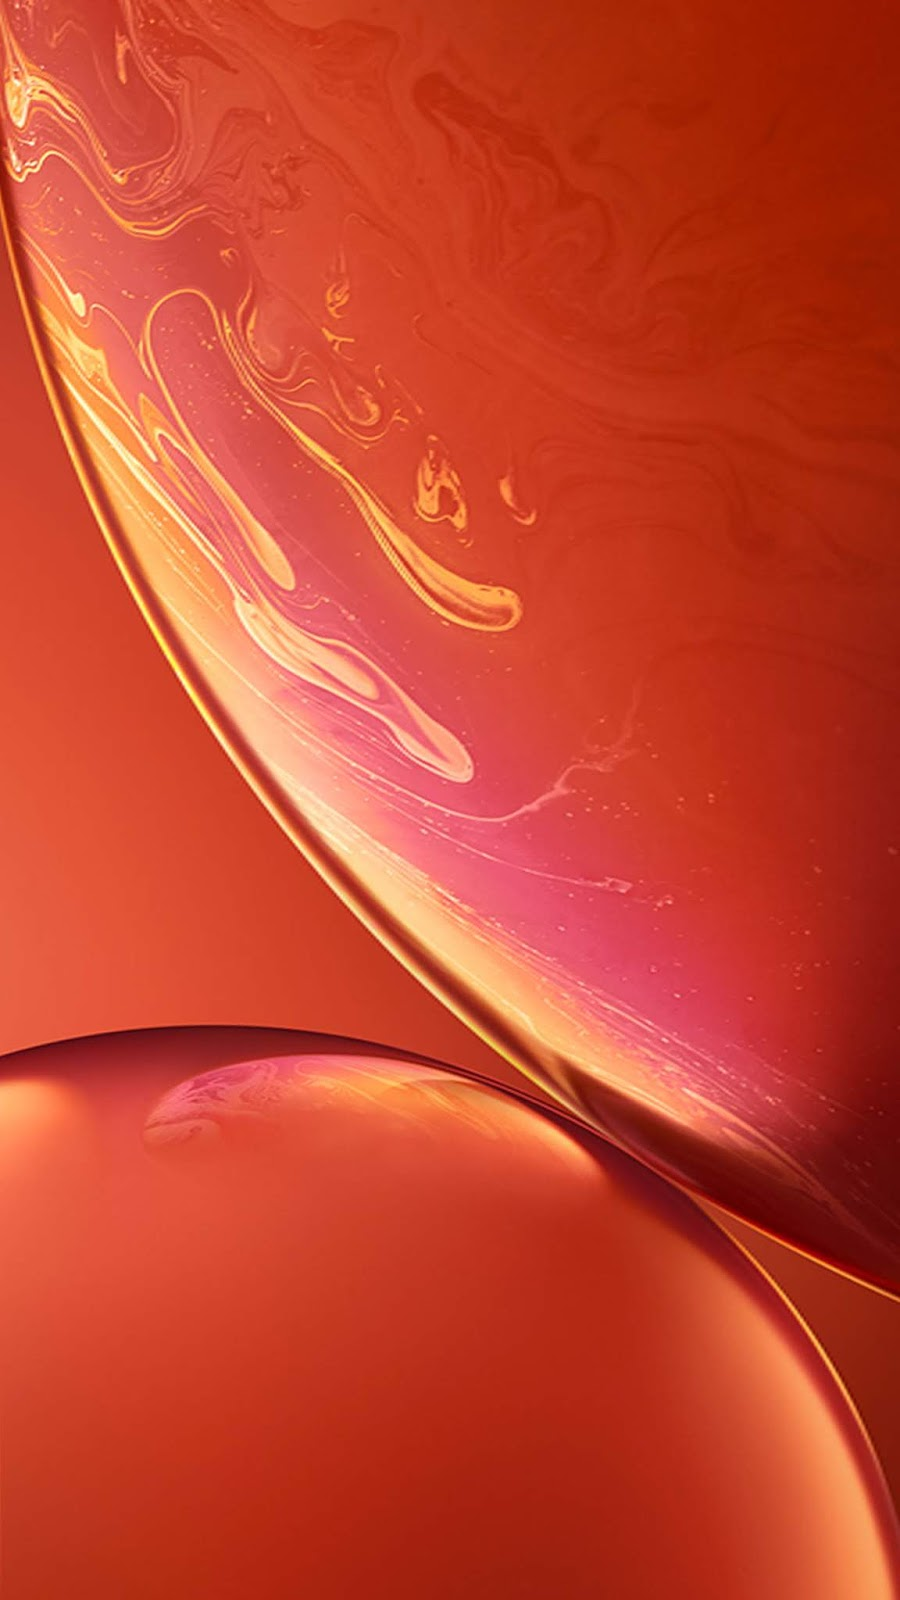 iphone XS FHD wallpaper